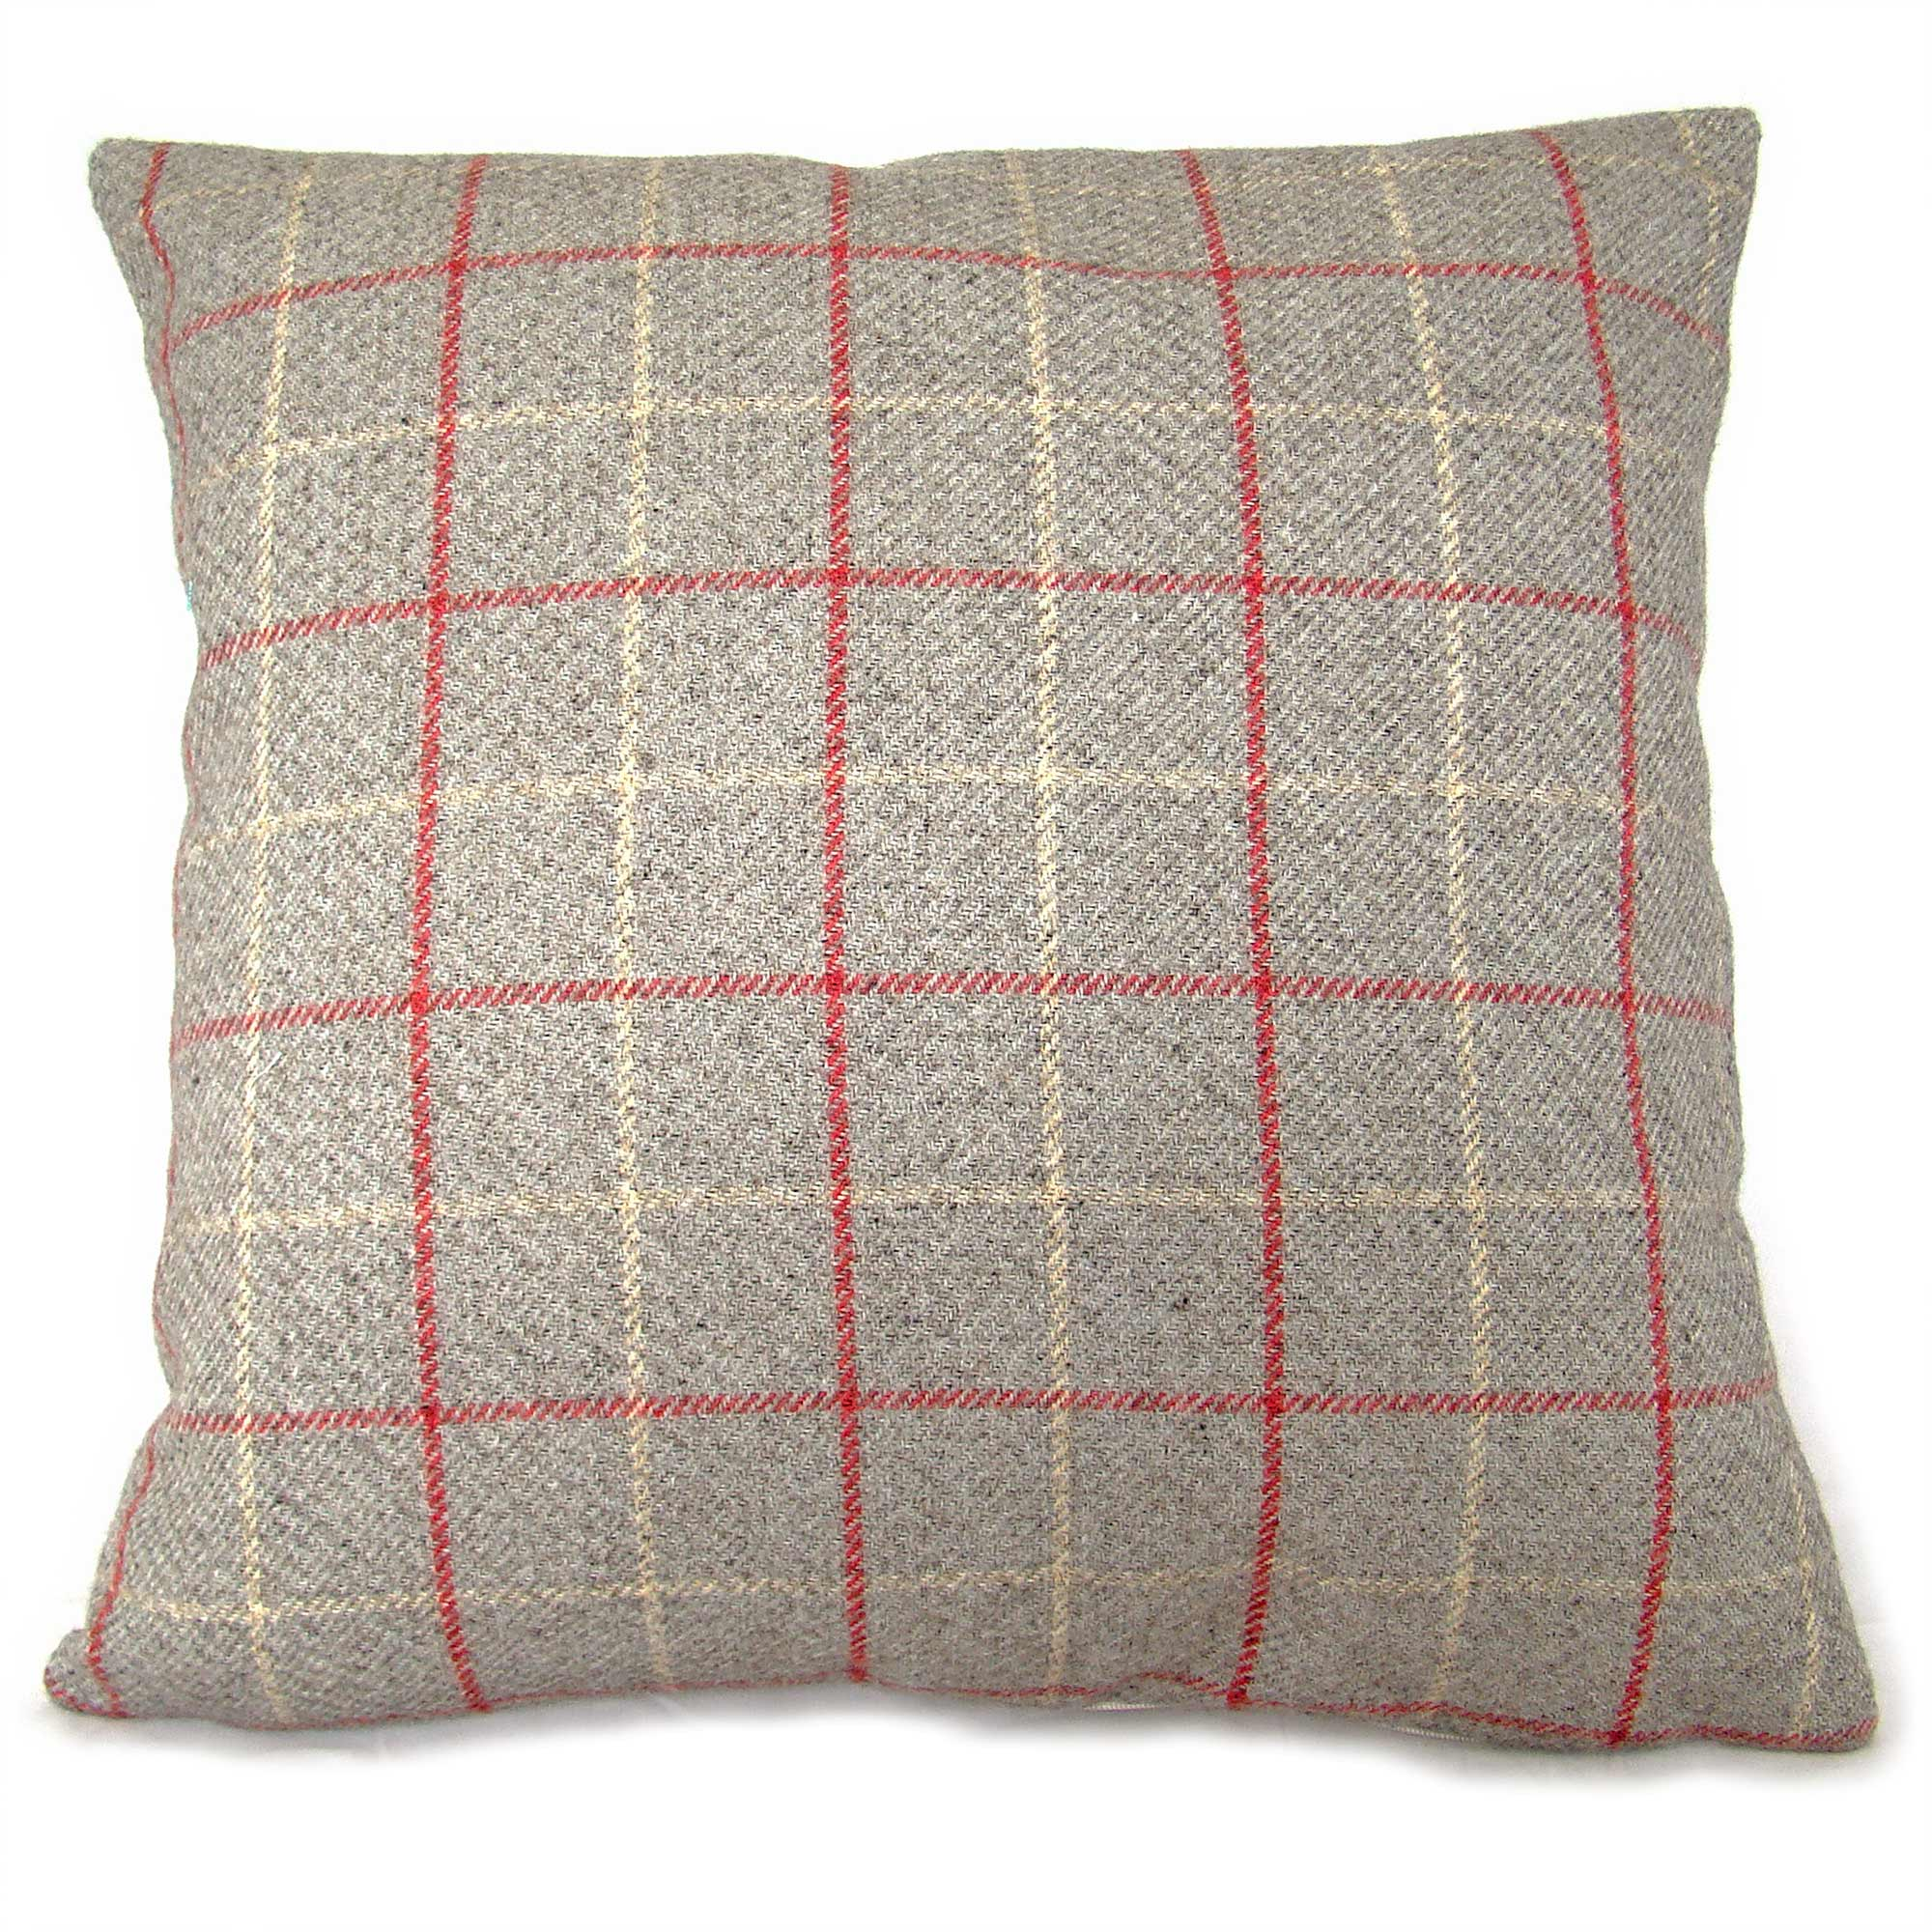 Photo of Banburgh cushion cover cherry red